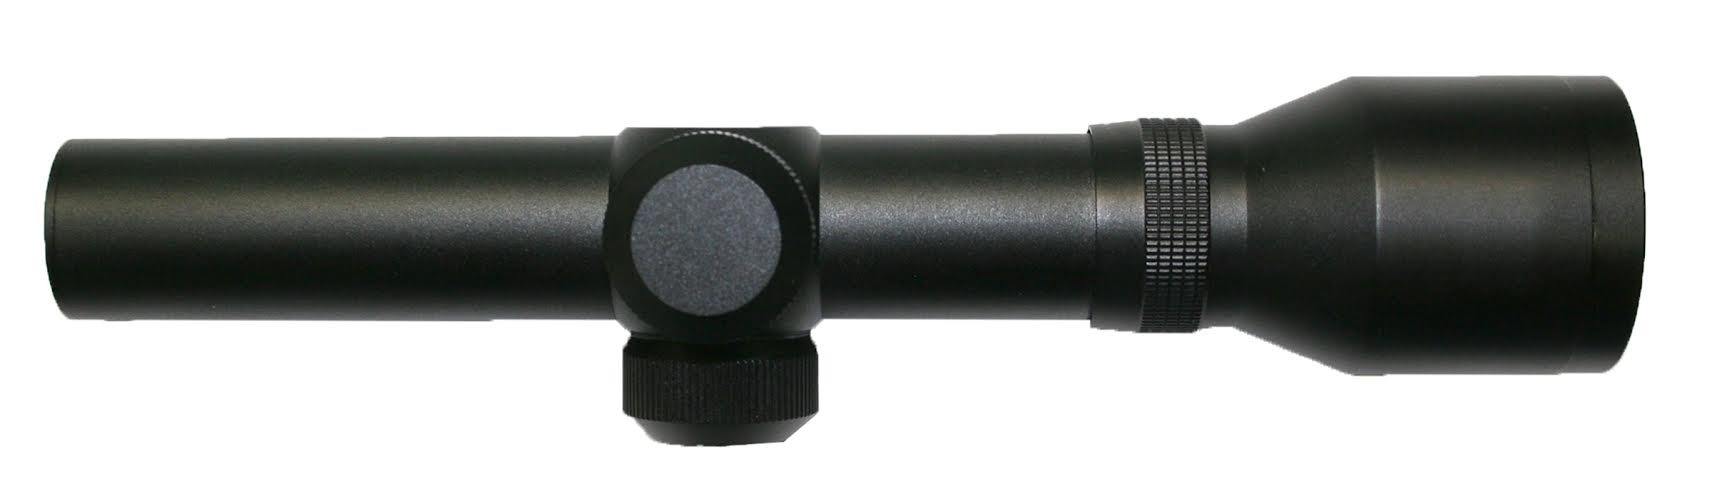 Umarex RWS 2300582 1.7 x 20 Pistol Scope with Rings by Umarex